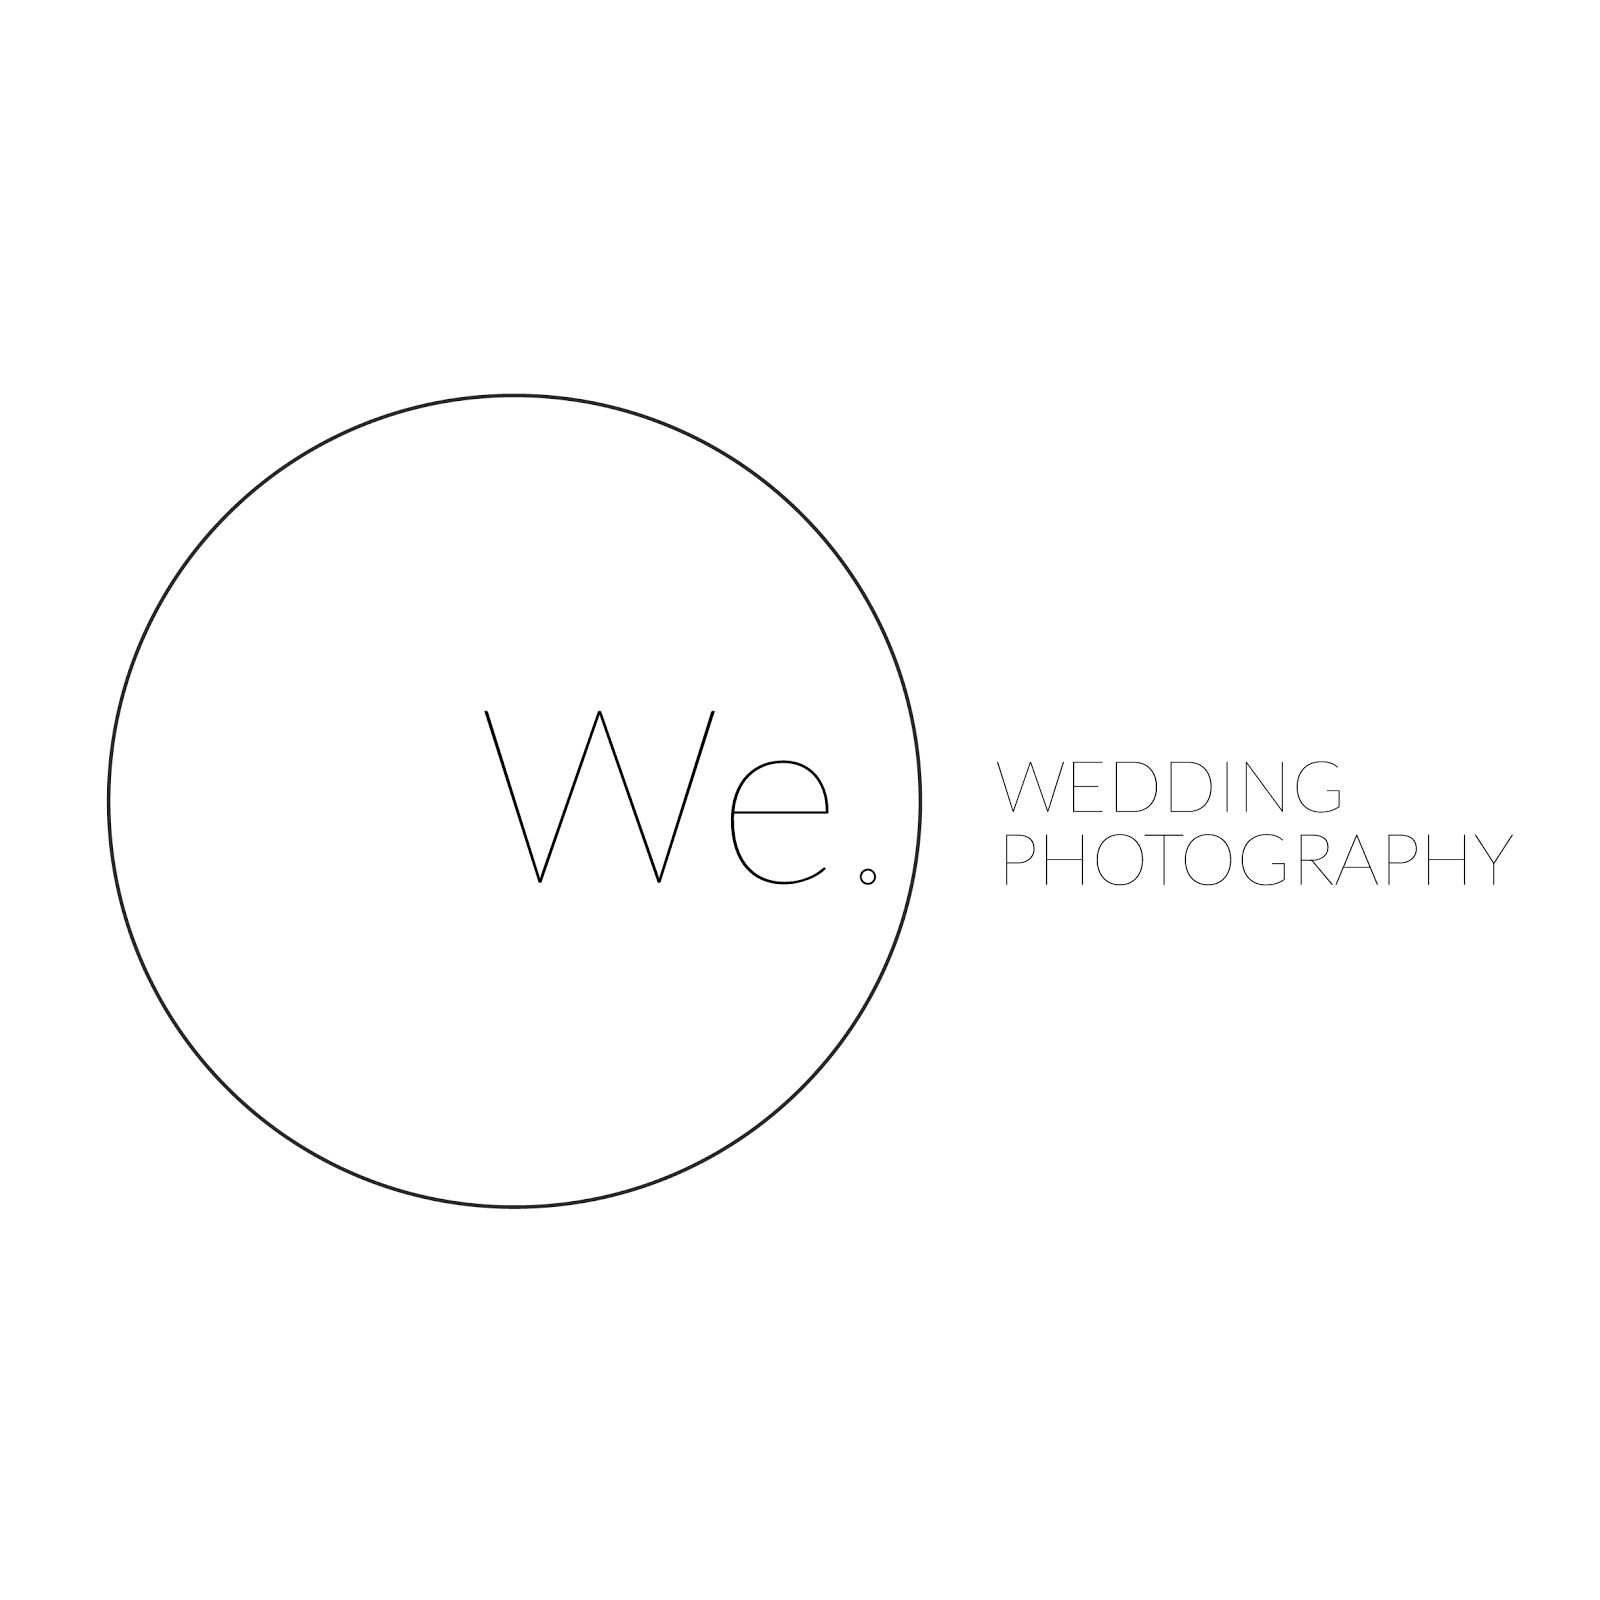 We.weddingphotograpy